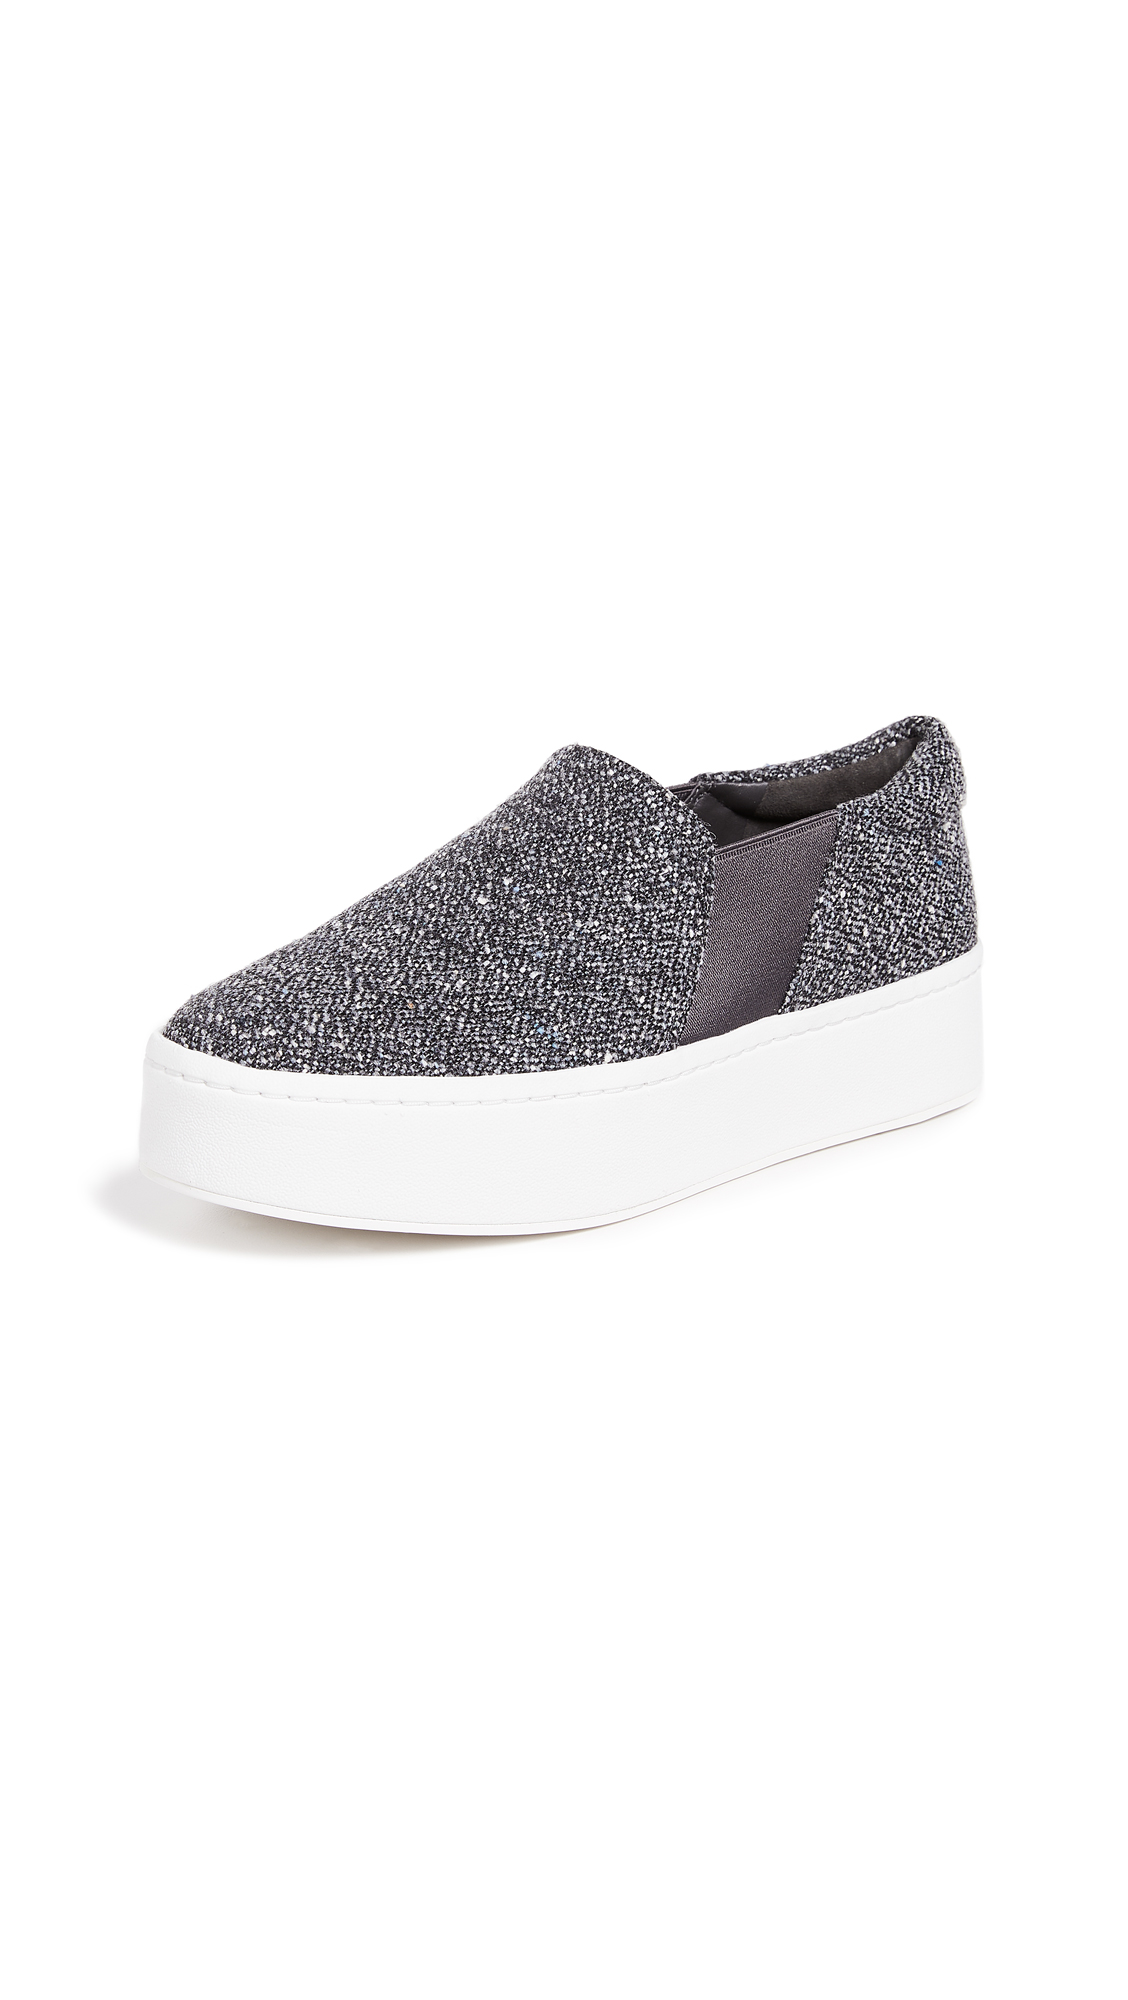 Vince Warren Slip On Sneakers - Grey